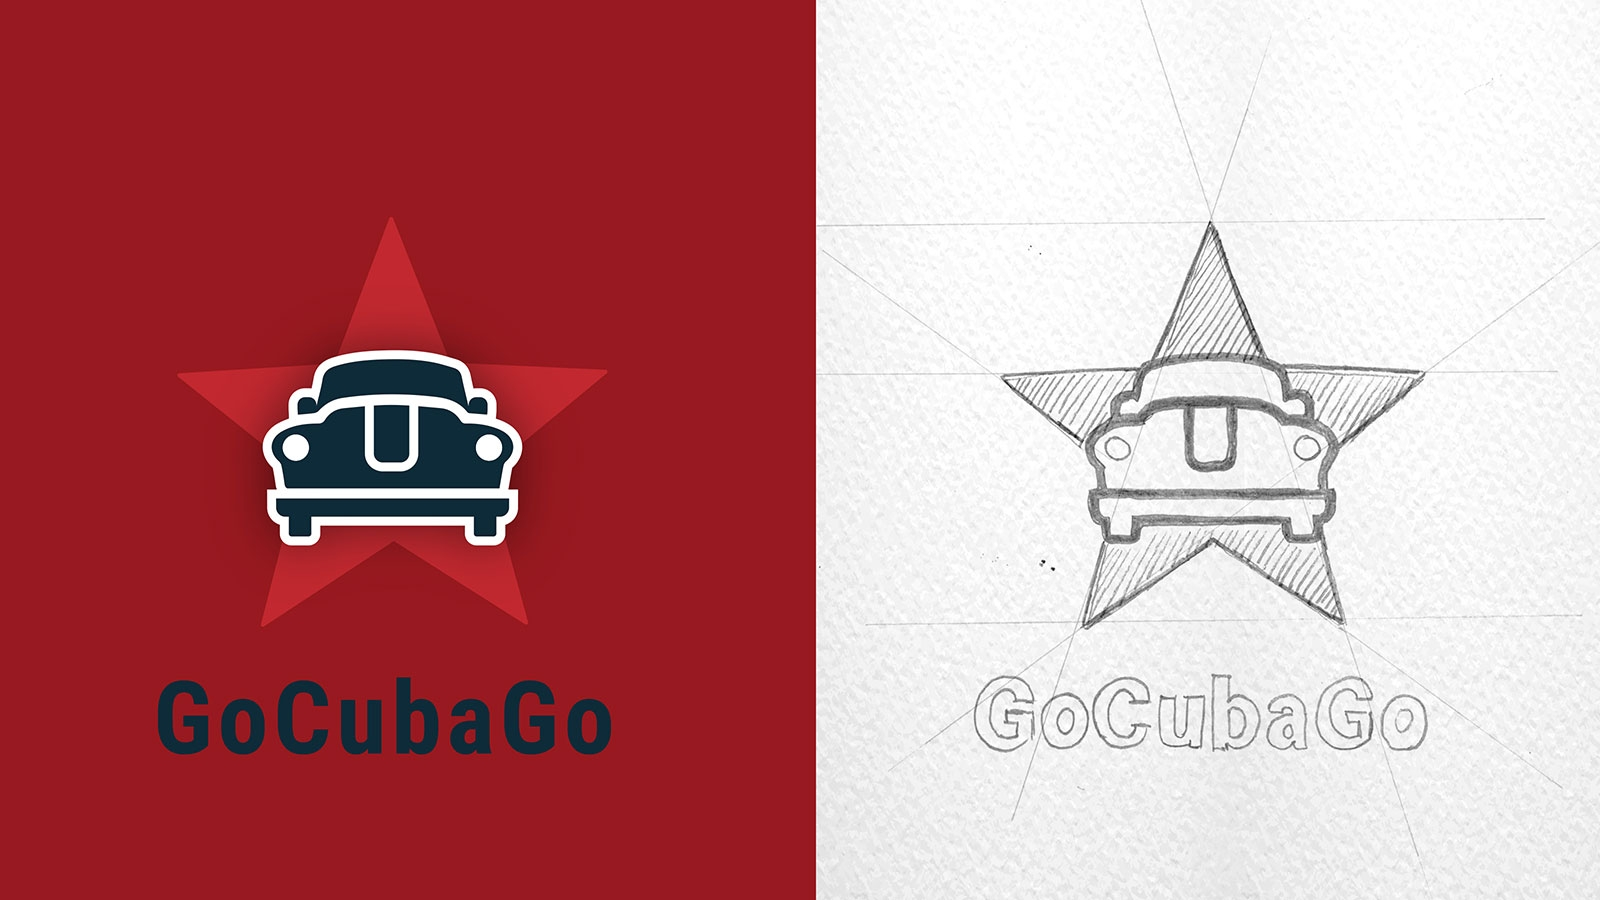 Go Cuba Go | gocubago.com | 2018 (Logo + Scribble) © echonet communication GmbH